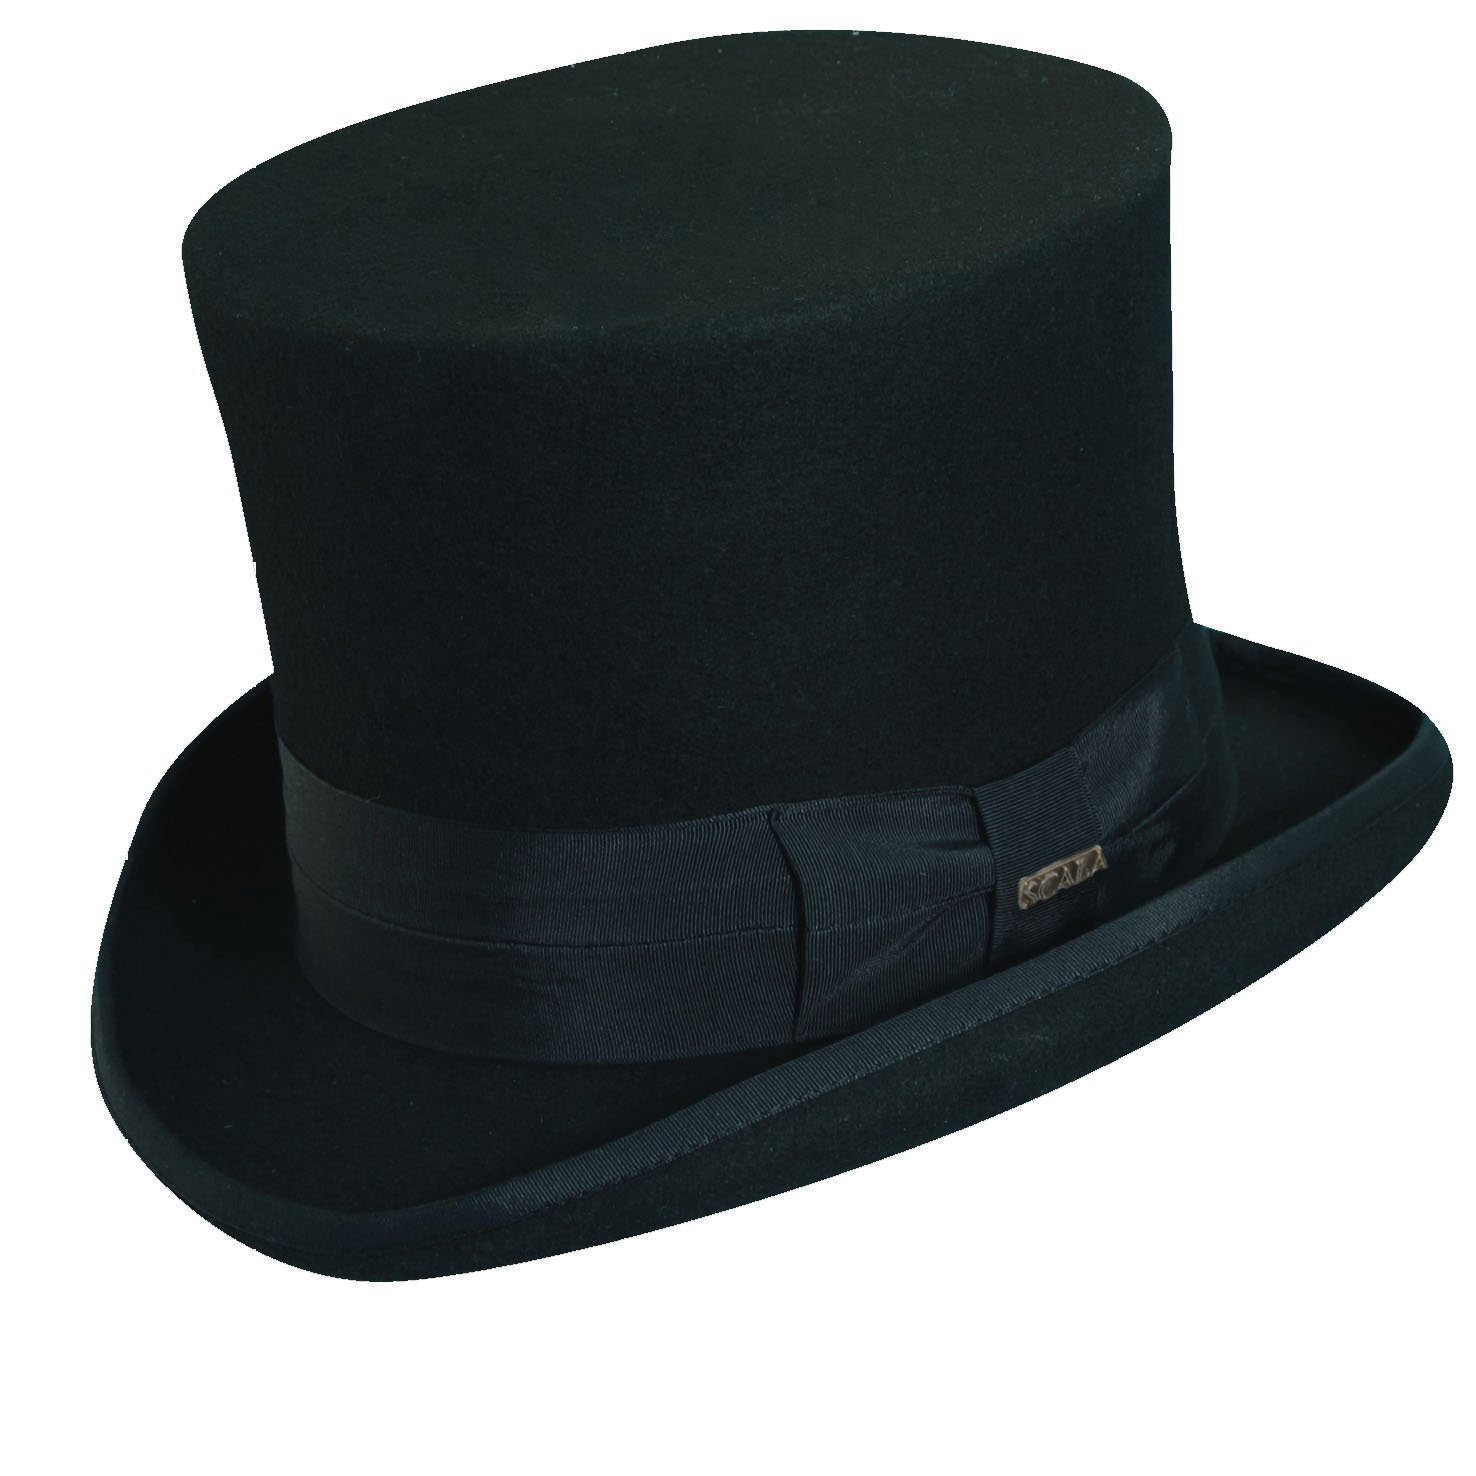 Wool Felt Top Hat With 7 Inch Crown Clipart.